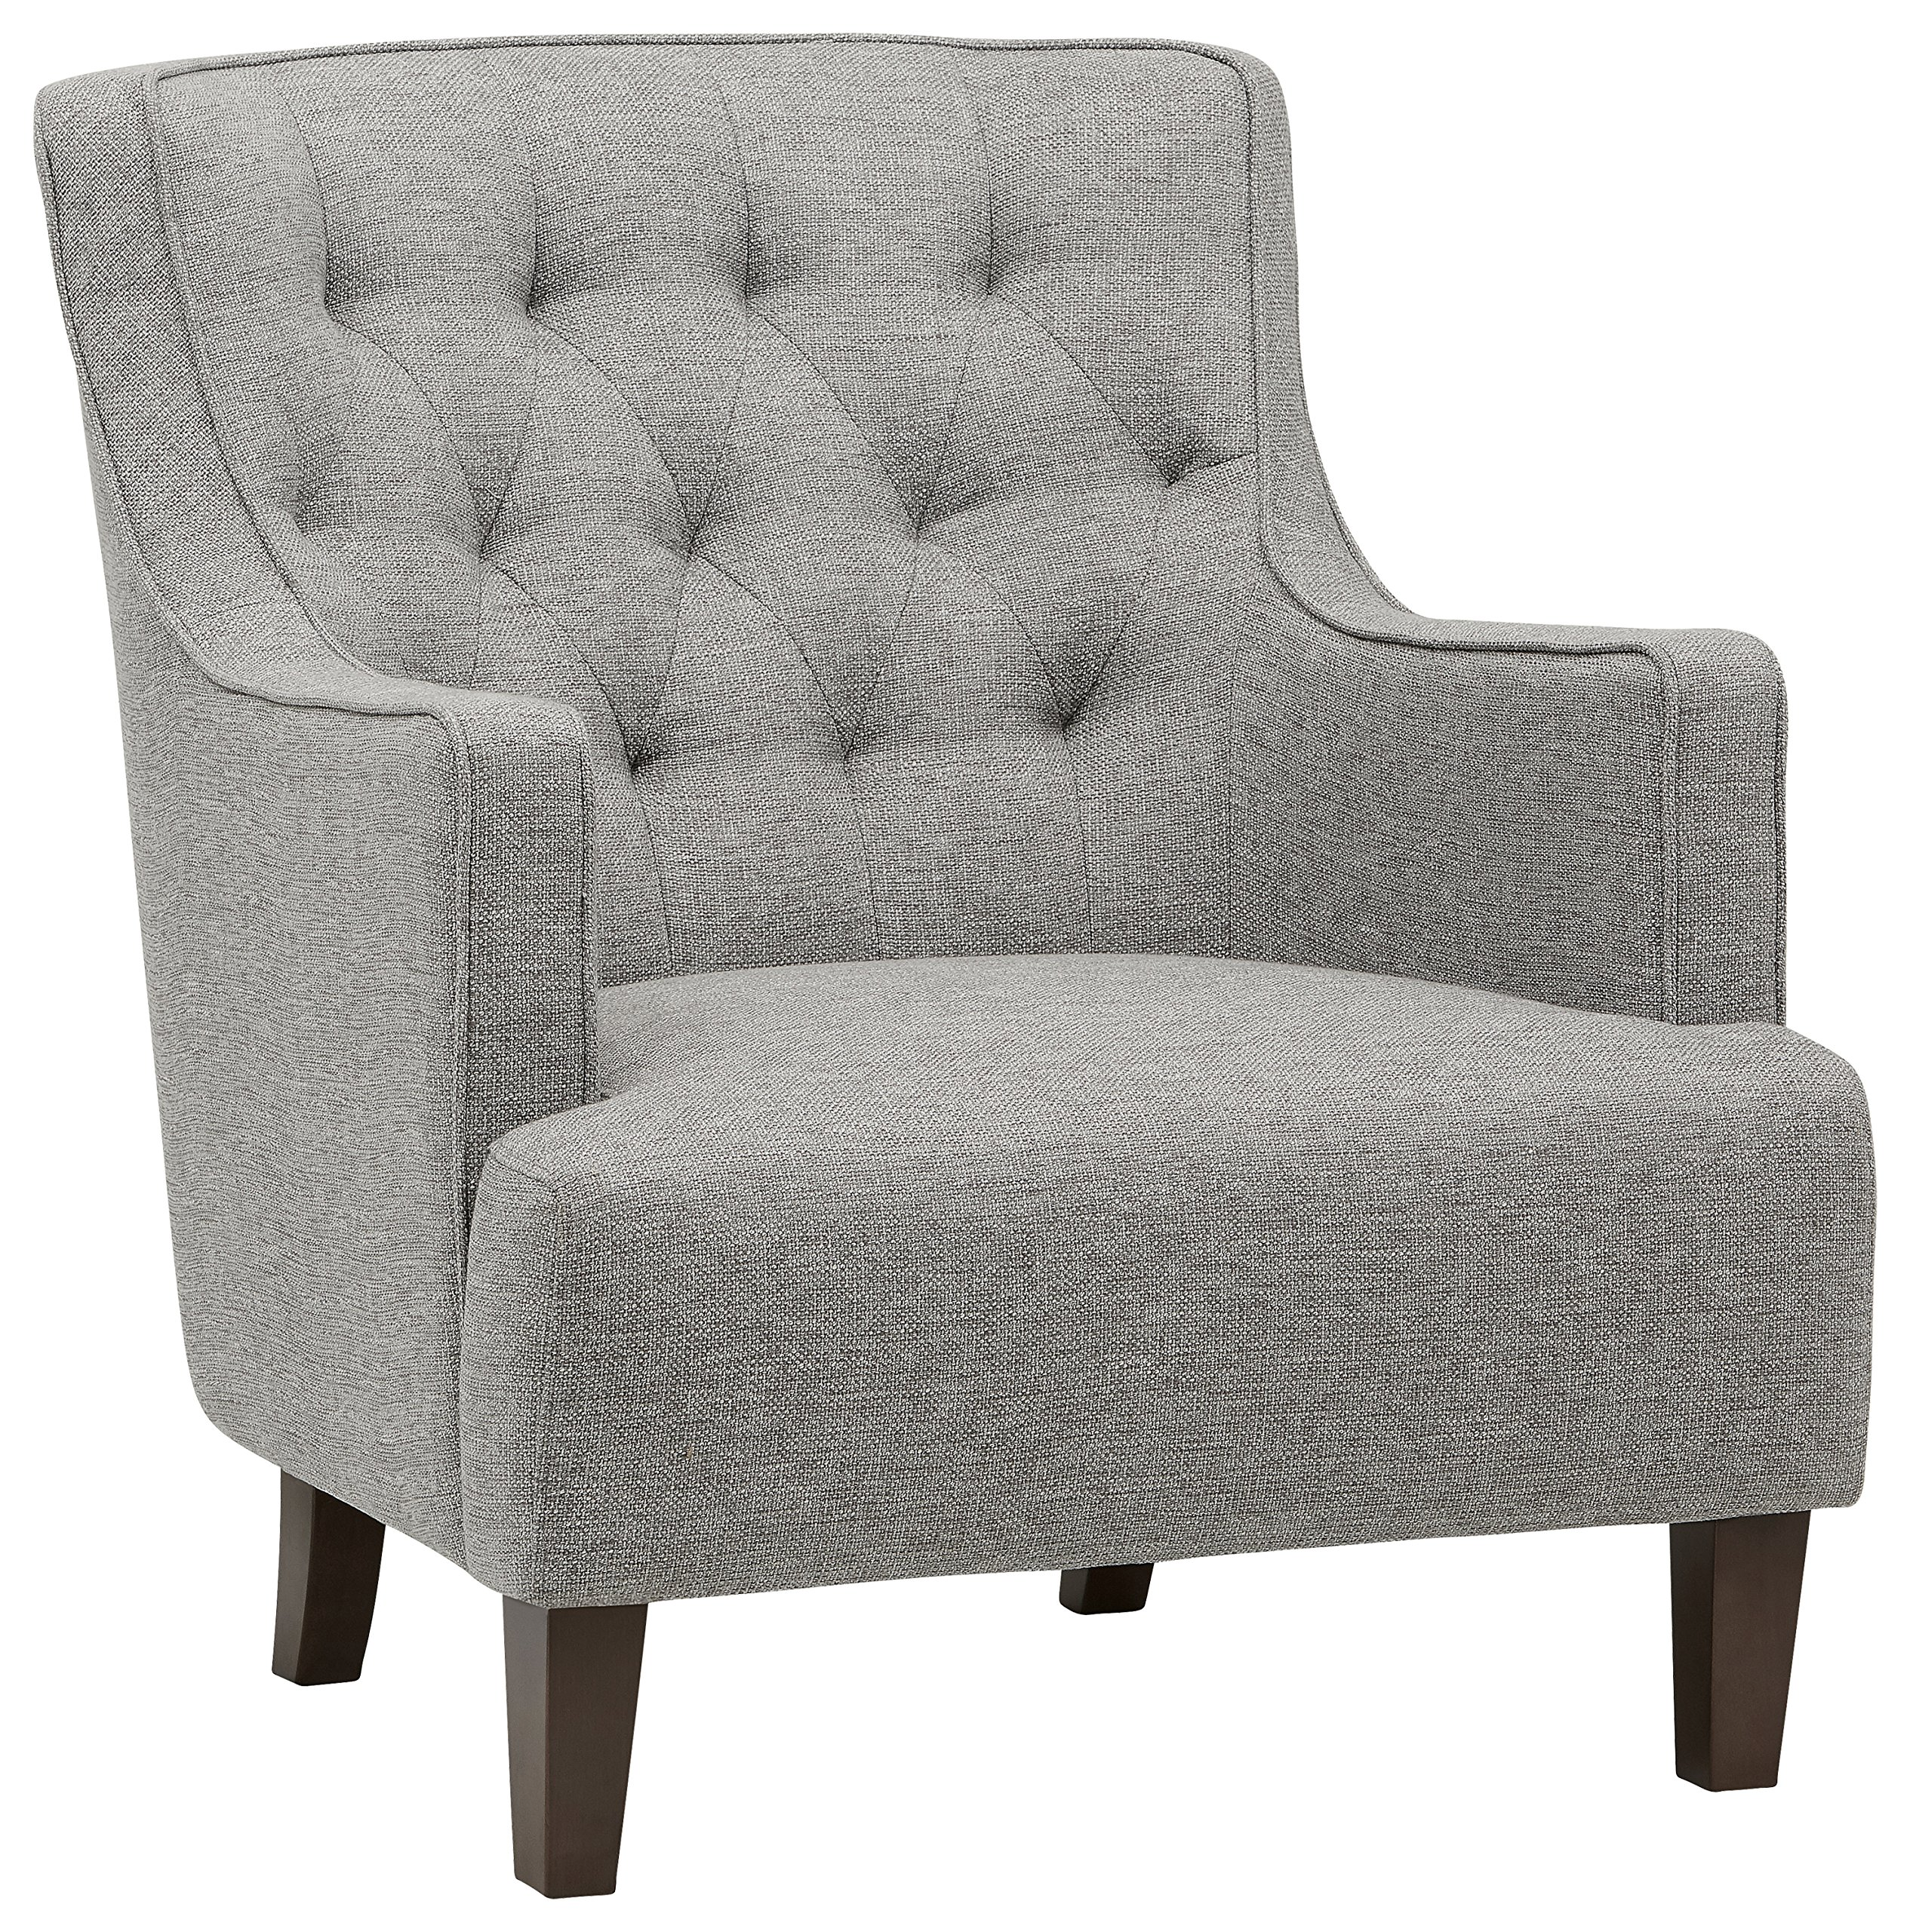 "Stone & Beam Decatur Modern Tufted Accent Chair, 31""W, Silver - This modern accent chair is ready to withstand your busy family life. Tufted fabric and curved sides bring style and durability that will hold up against the kids, pets and lots of entertaining in your living room. 32.3""W x 35.8""D x 36.2""H Solid beach wood covered in polyester fabric - living-room-furniture, living-room, accent-chairs - B1MD60owSSS -"